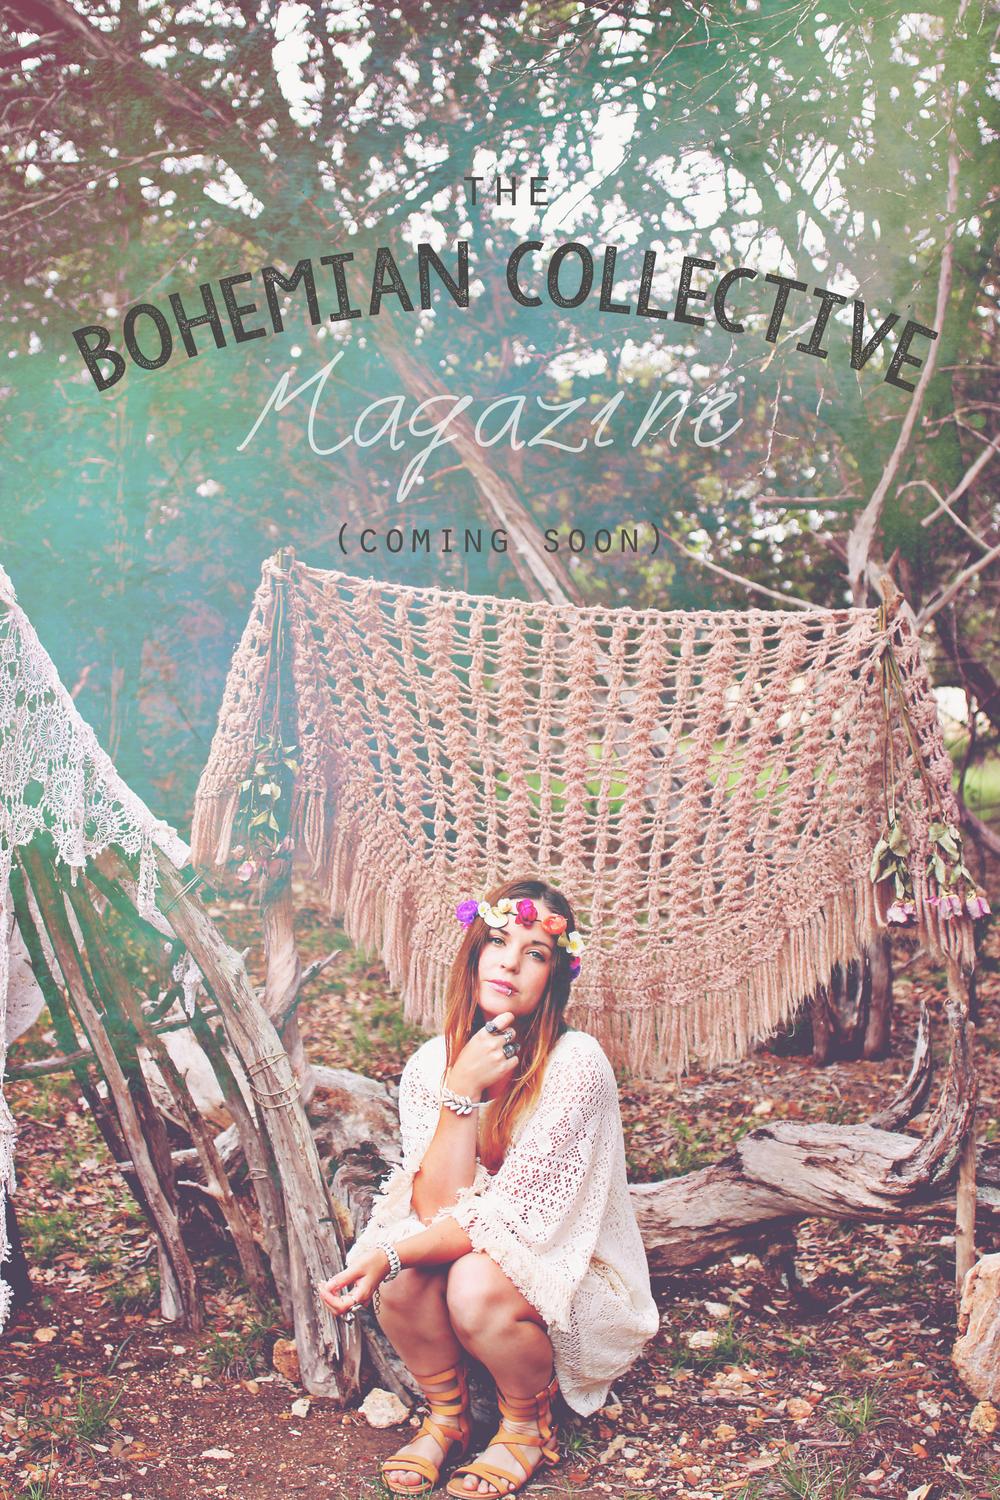 The Bohemian Collective Magazine Announcement